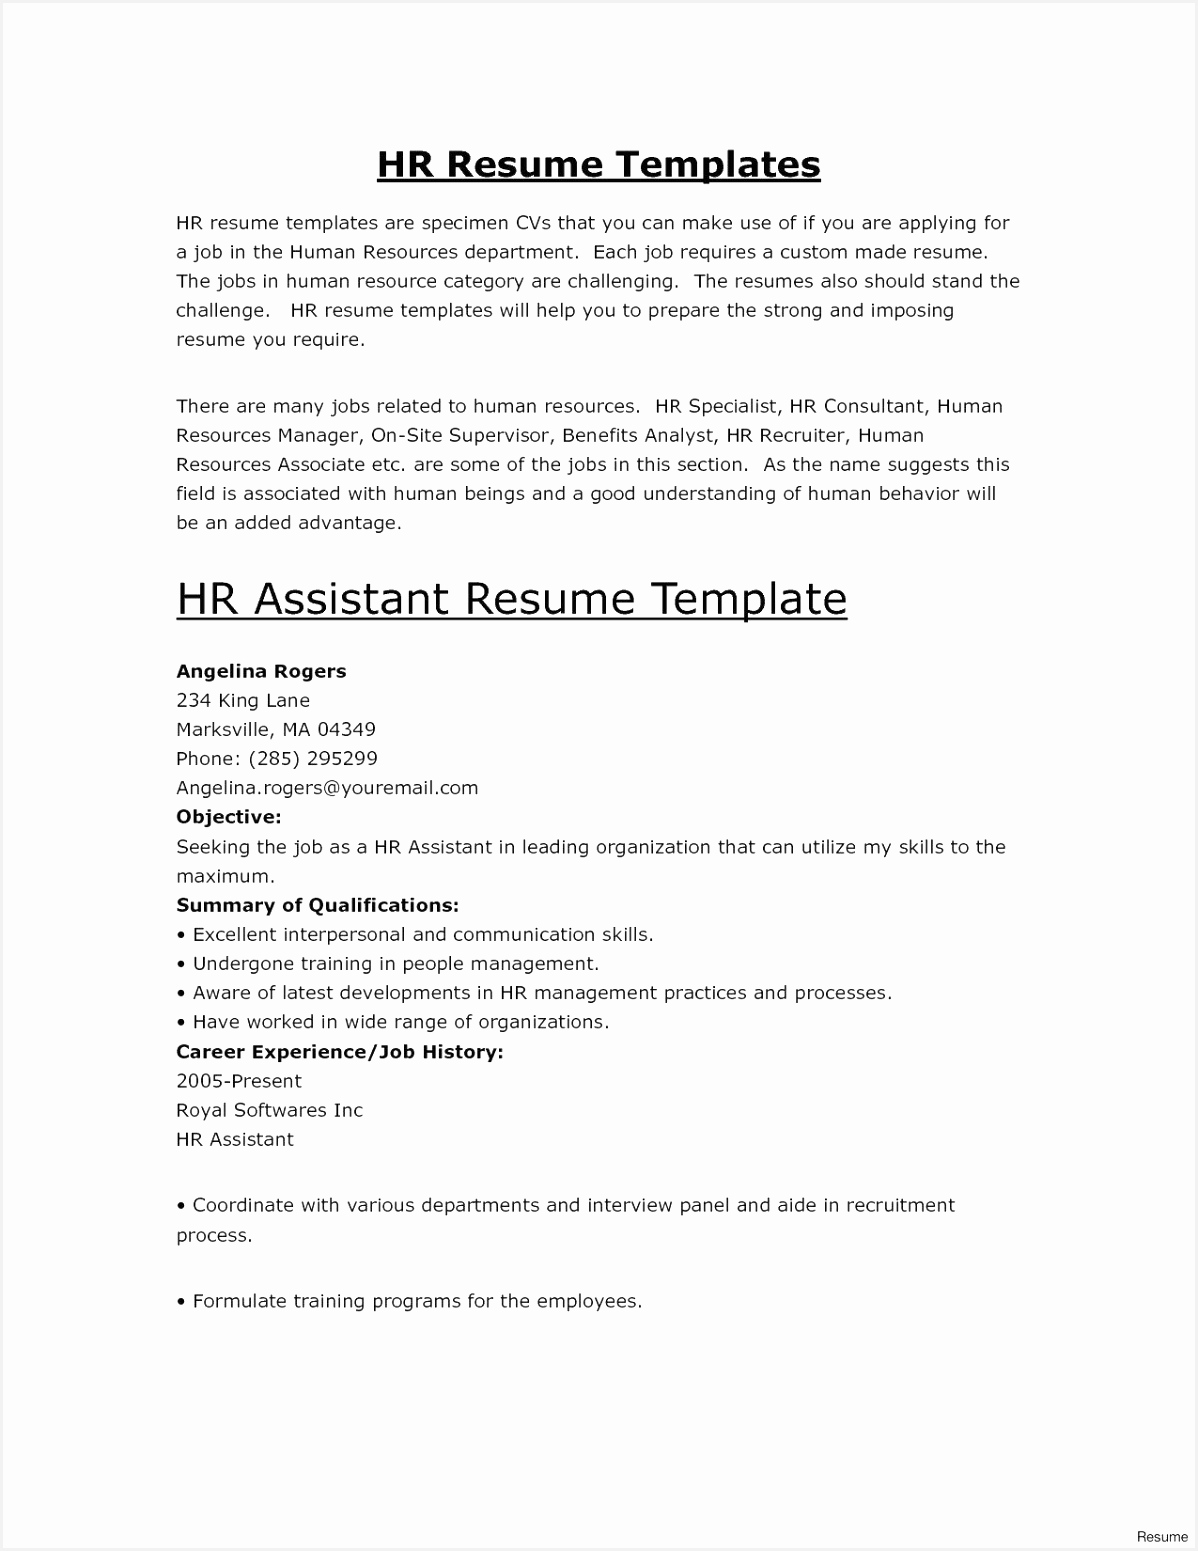 Example Of Simple Resume for Job Application Osxkt Lovely Hairstyles Basic Resume Examples Interesting Resume Cover Letter Of 7 Example Of Simple Resume for Job Application